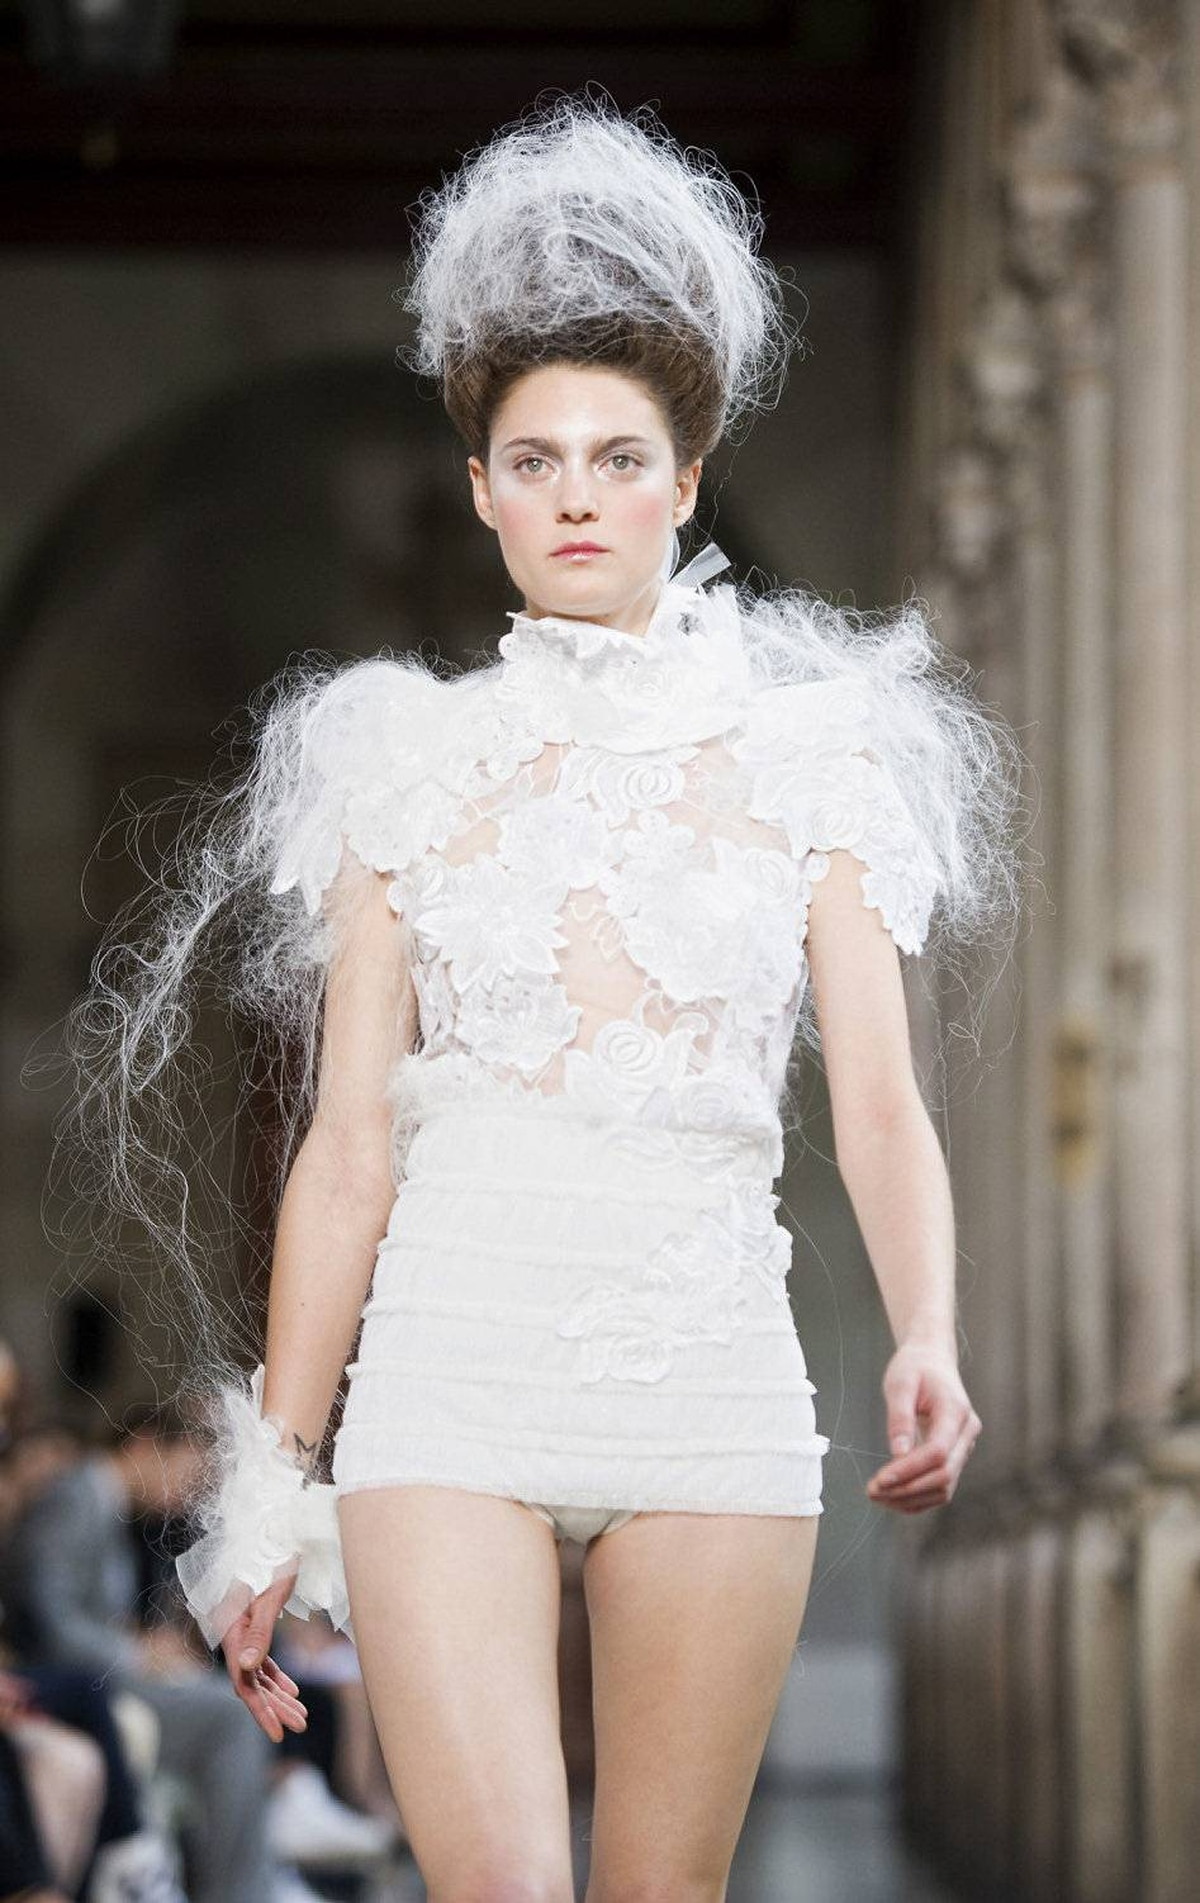 A model walks the runway during the Celia Vela catwalk show as part of the 080 Barcelona Fashion week on July 14, 2011.